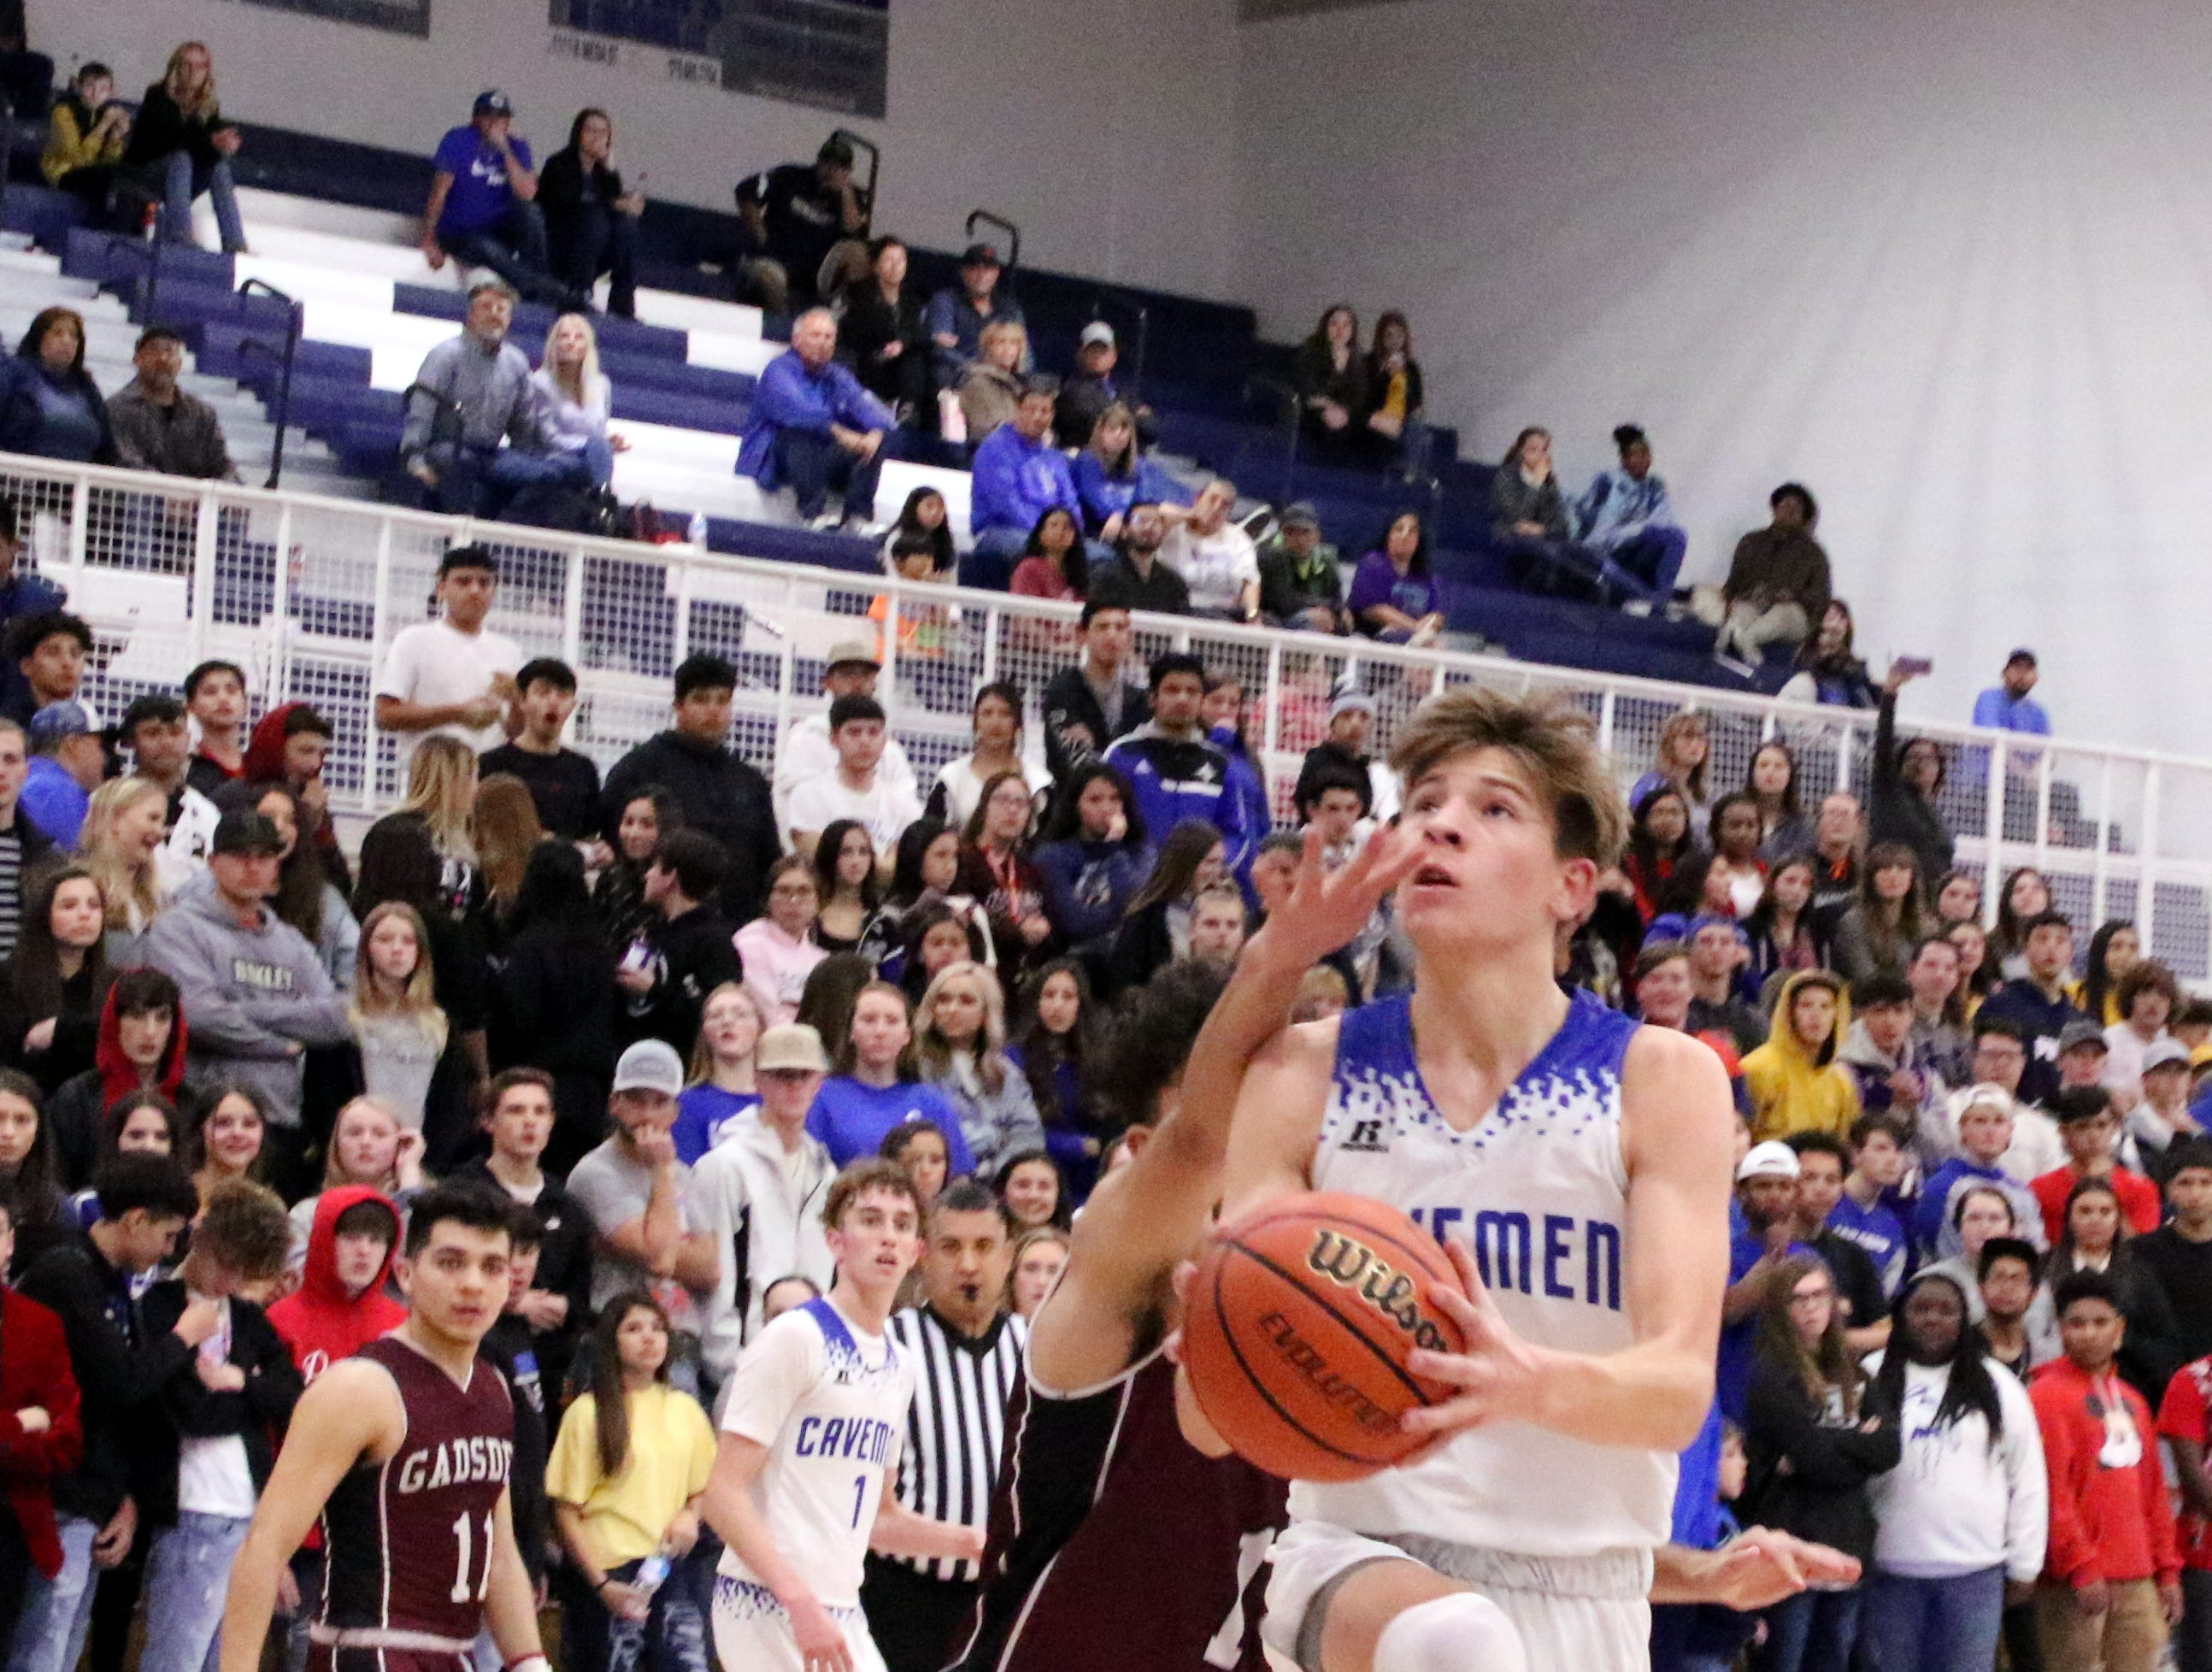 Carlsbad's Stevie Bartlett is fouled as he shoots a layup in the fourth quarter against Gadsden on Friday.